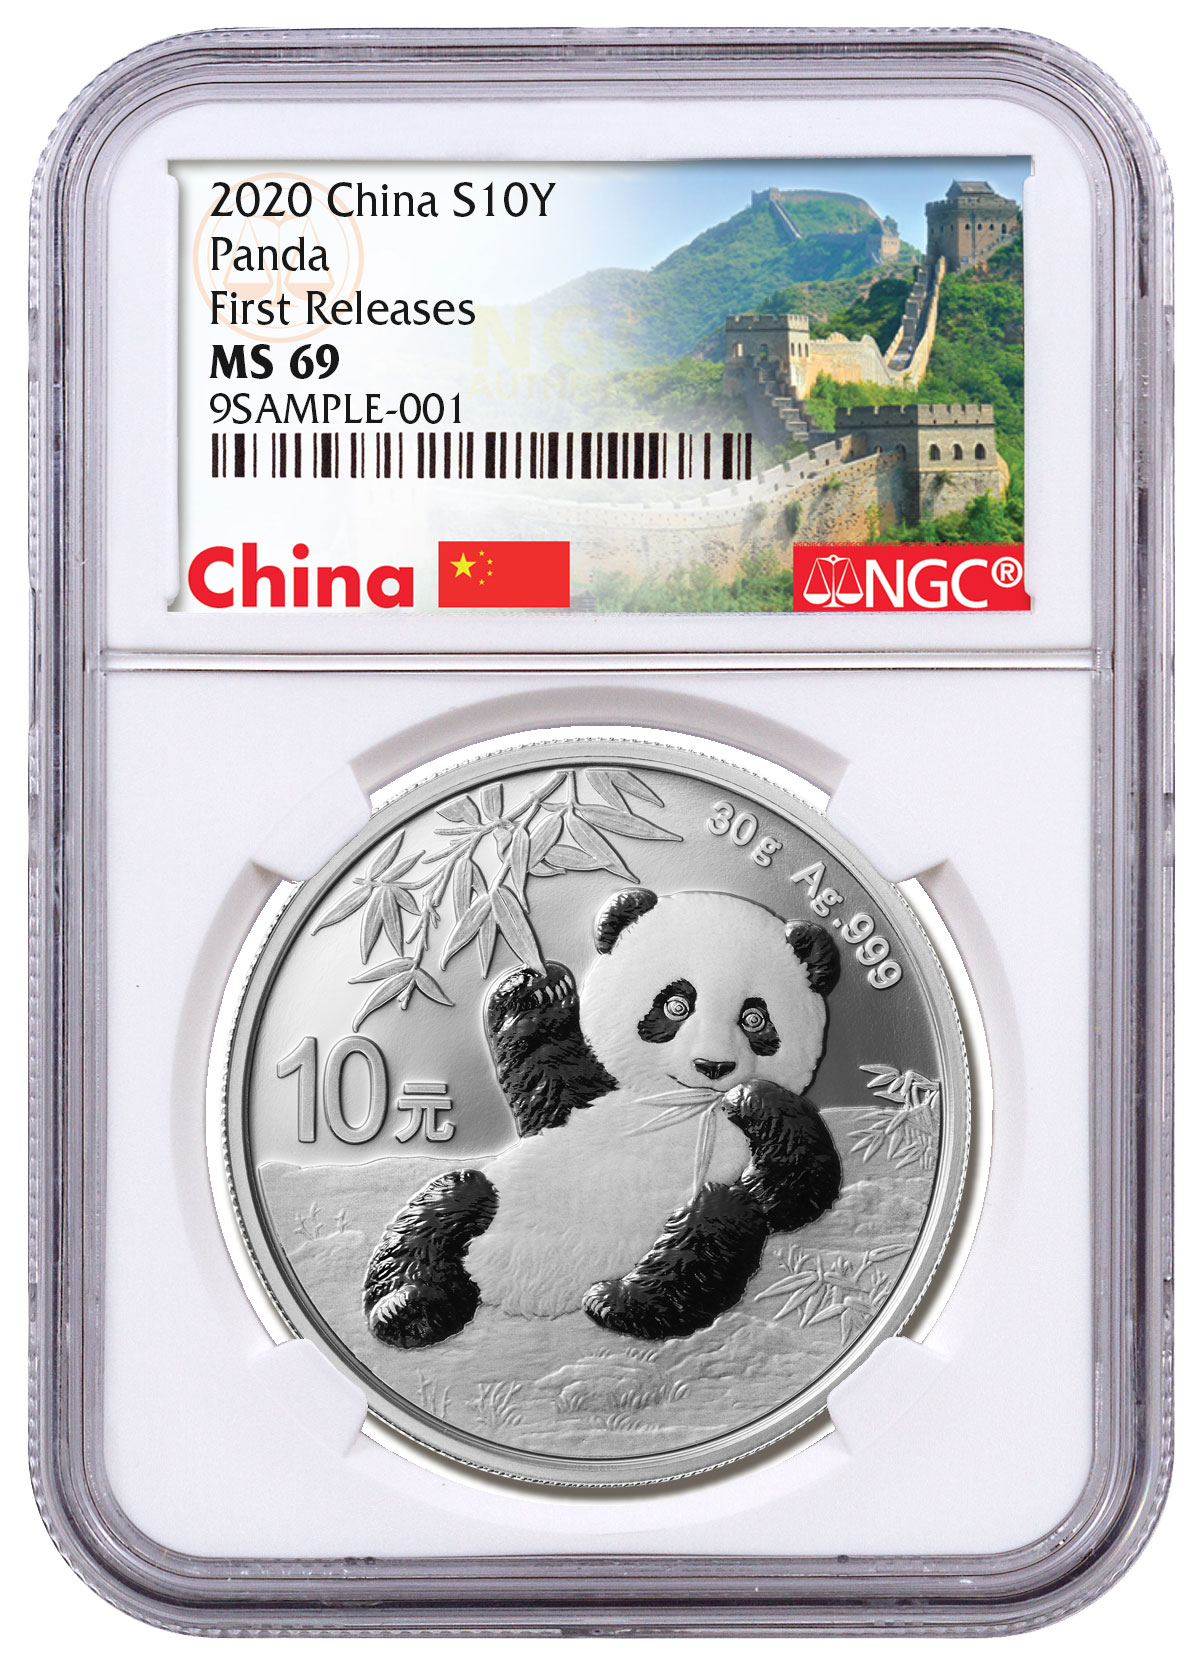 2016 Canada $5 Maple Panda Privy Mark Wall of China Colorized Coin NEW